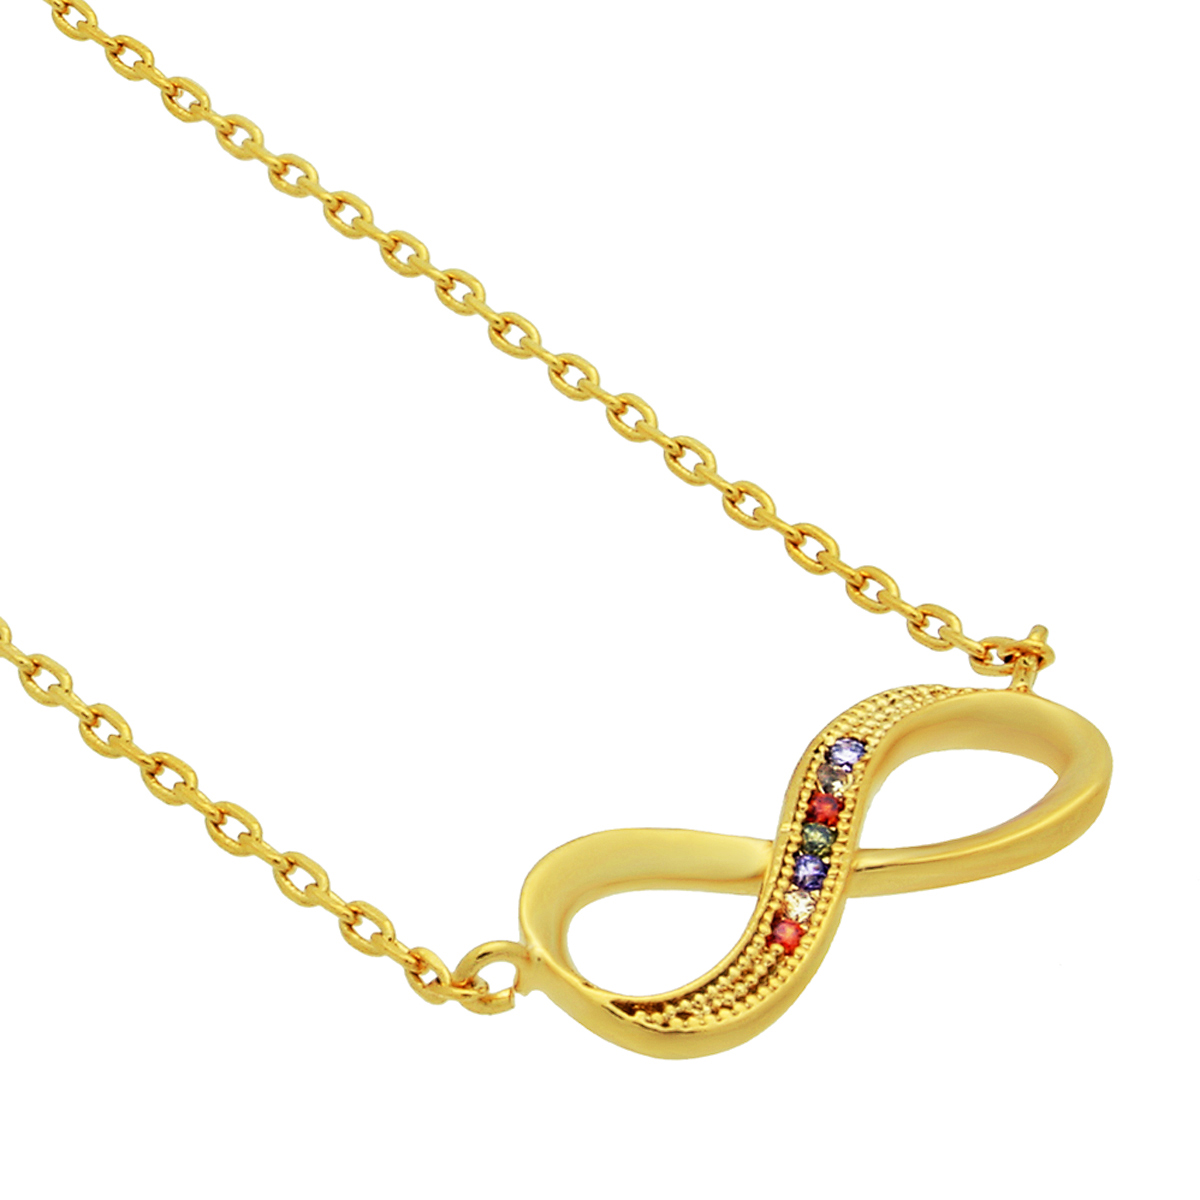 tzaro jewelry 14kt gold filled infinity necklace gold